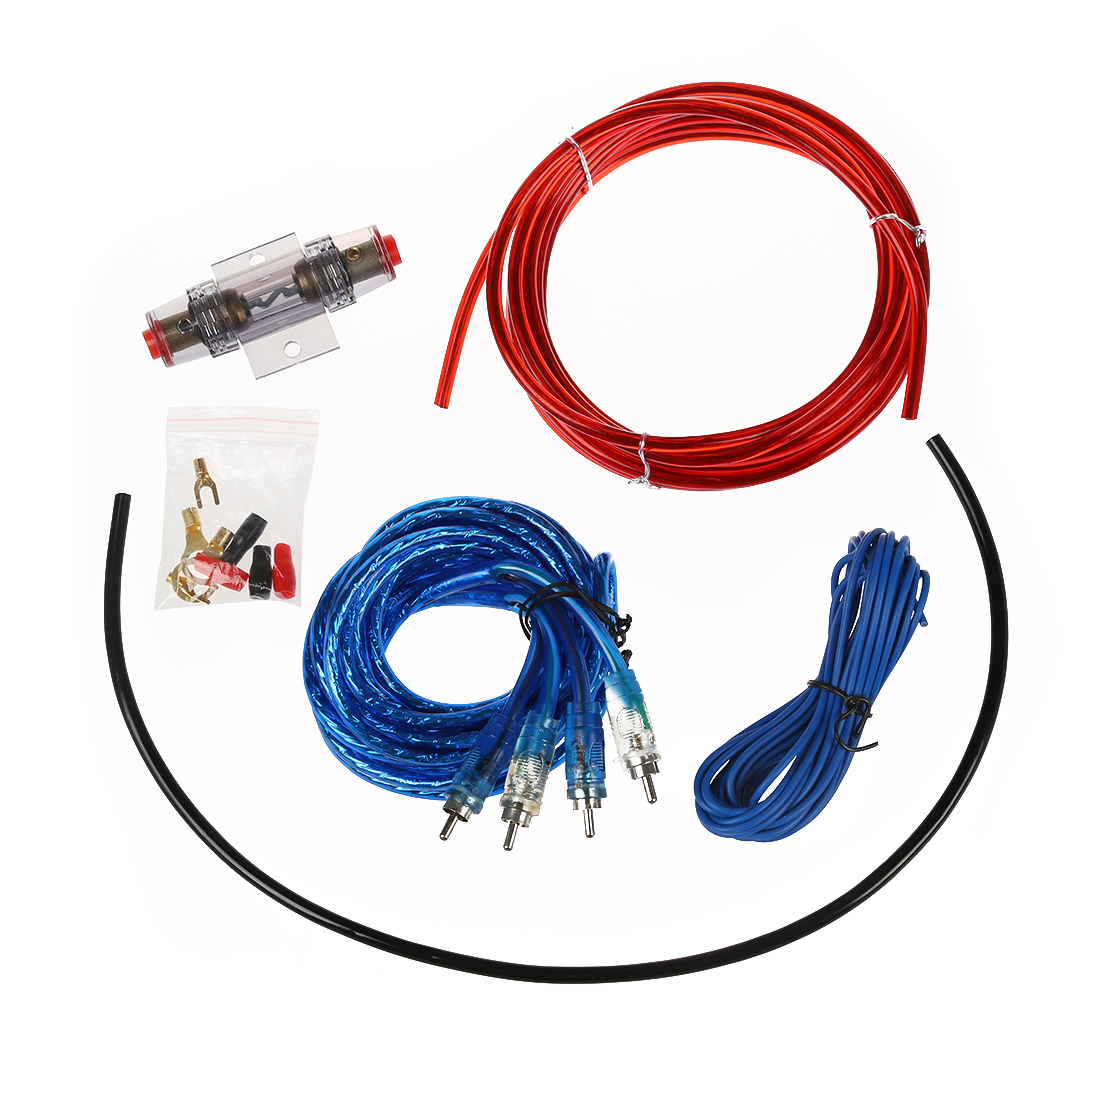 Top Deals 1500W Car Audio Wire Wiring Amplifier Subwoofer Speaker Installation Kit 8GA Power Cable 60